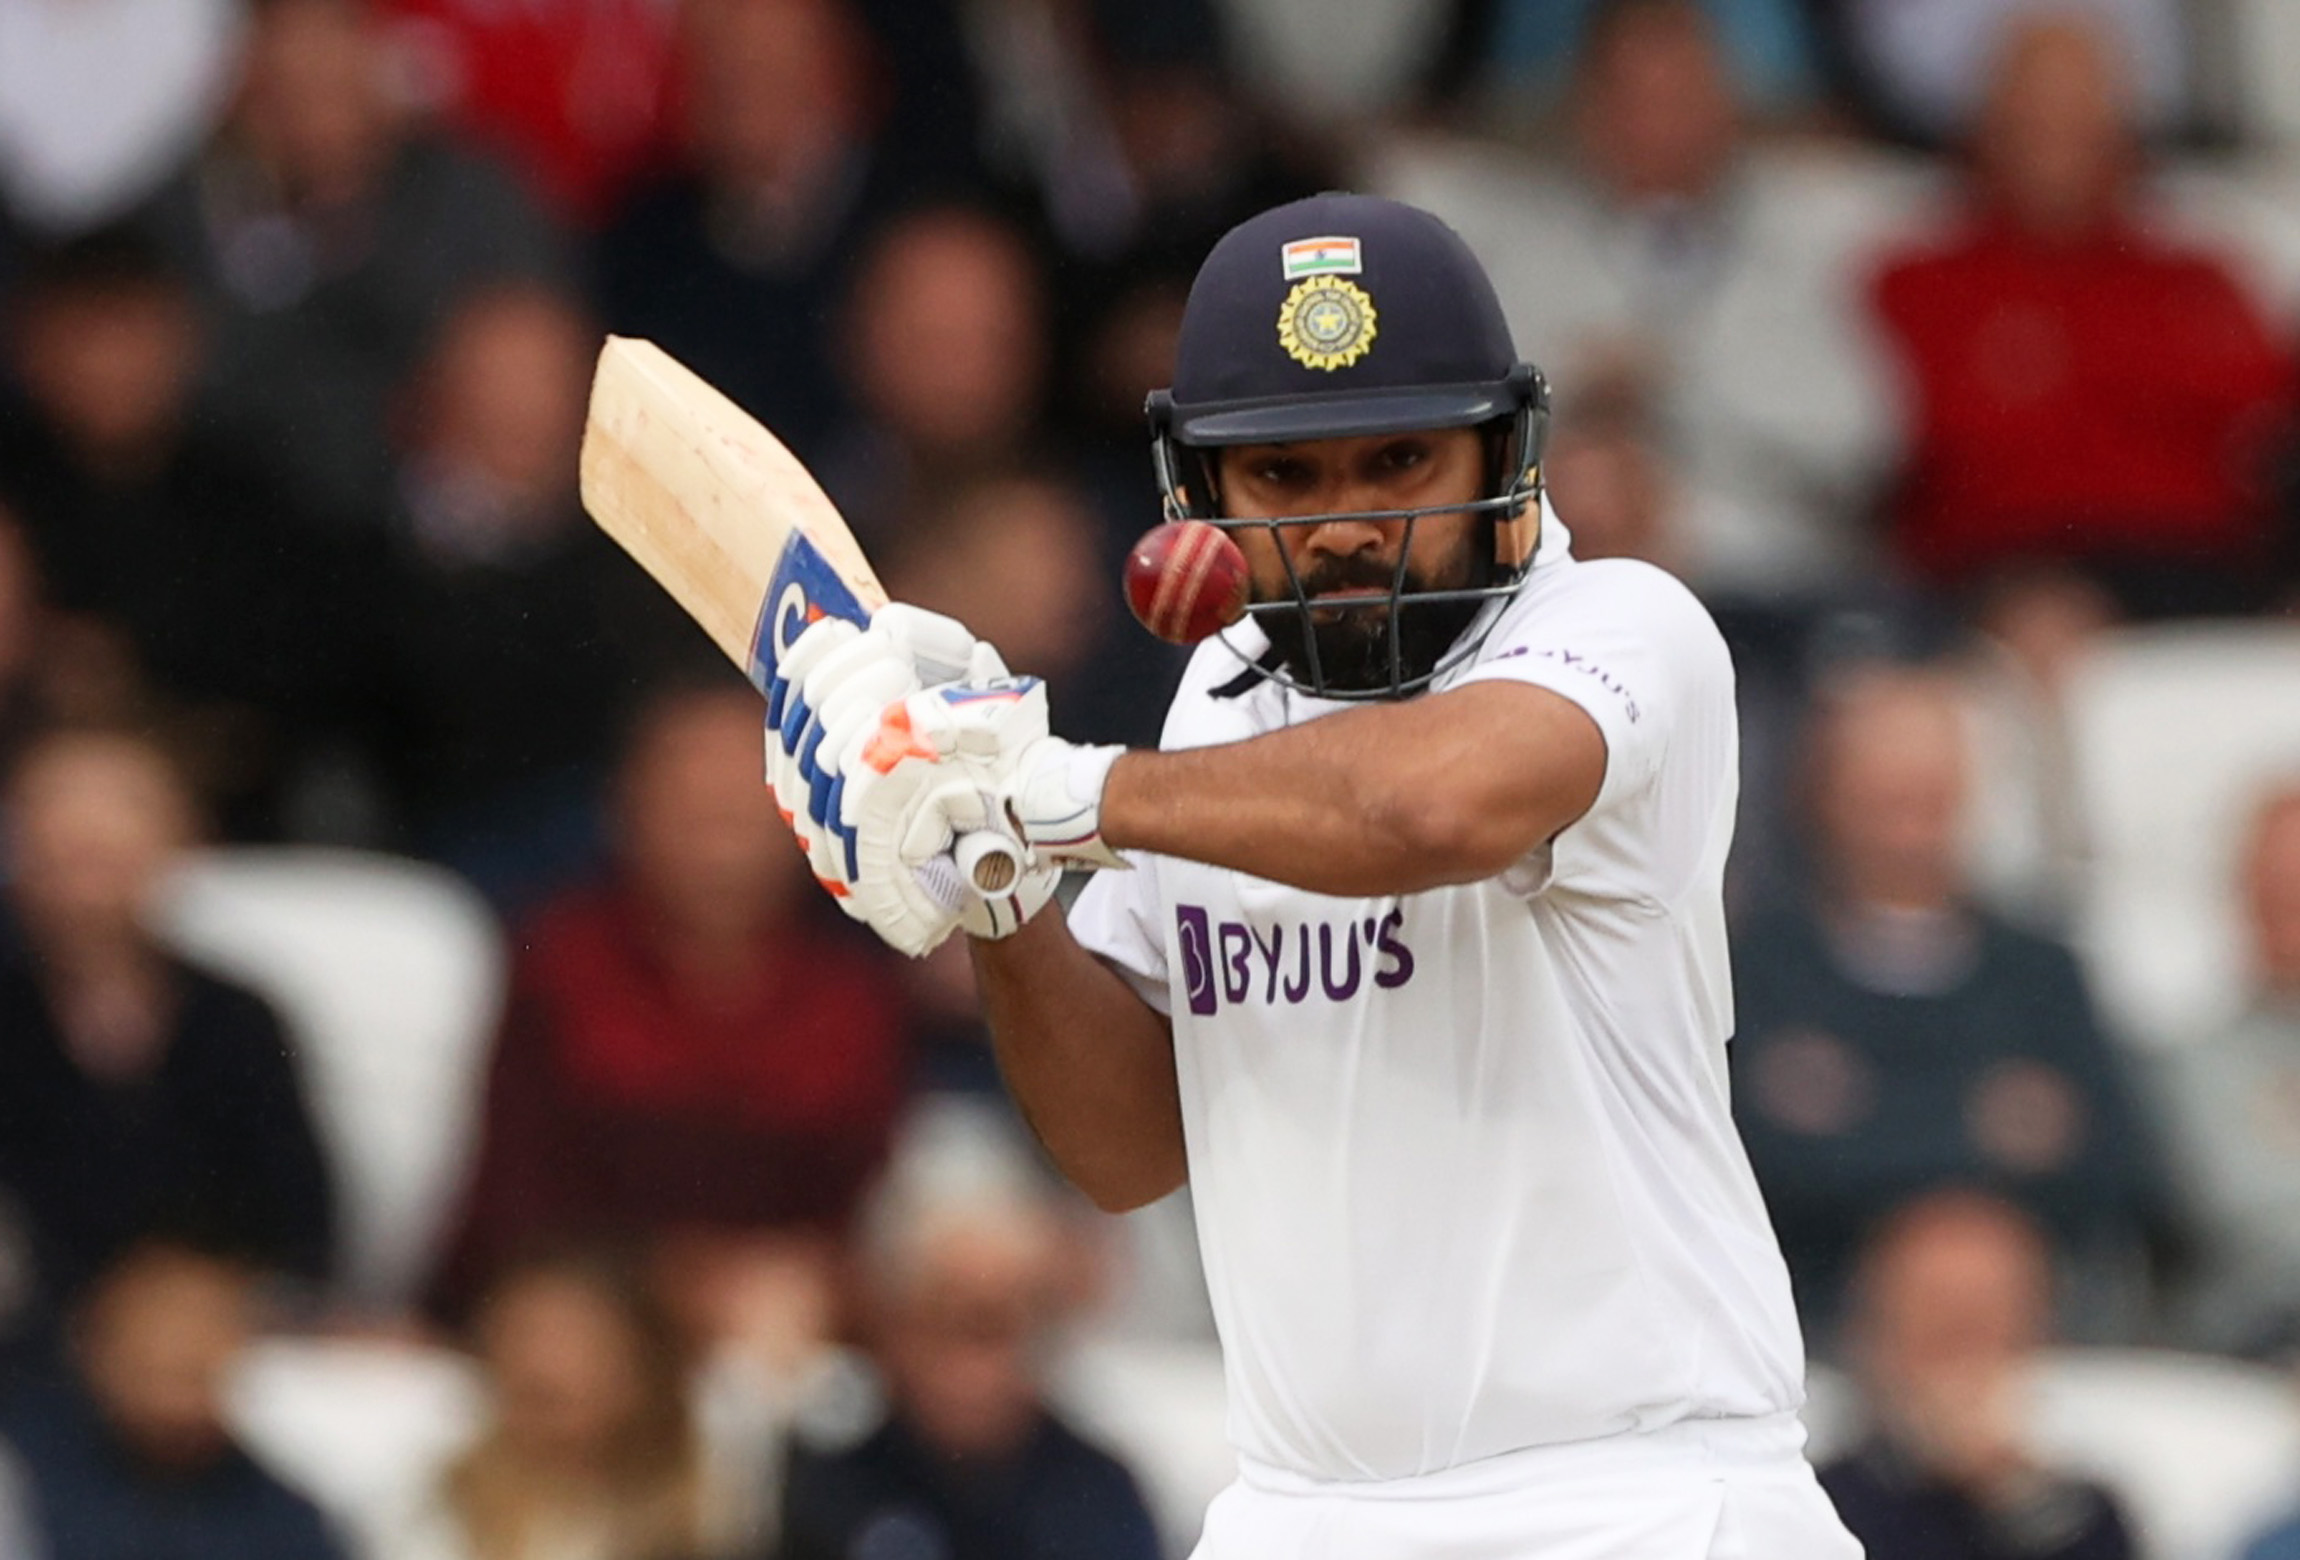 Cricket - Third Test - England v India - Headingley, Leeds, Britain - August 27, 2021 India's Rohit Sharma in action Action Images via Reuters/Lee Smith